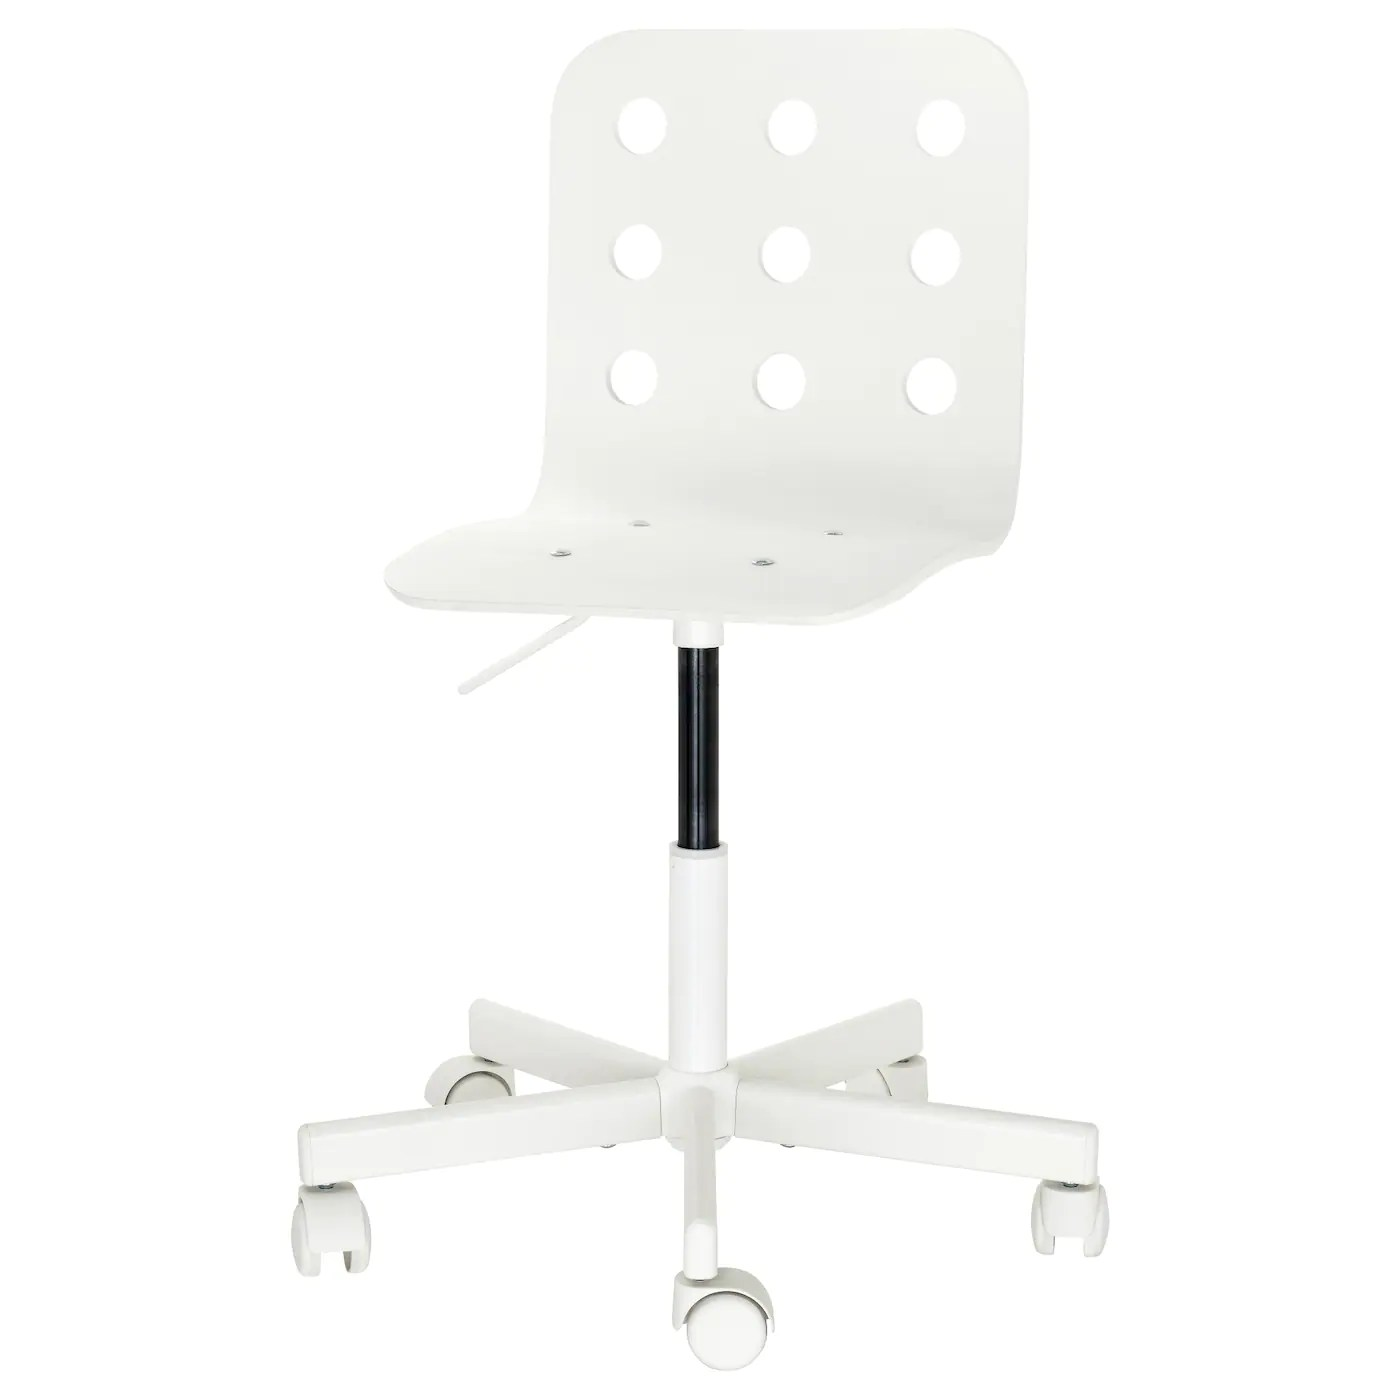 Ikea Desk Chair Jules Children 39s Desk Chair White Ikea